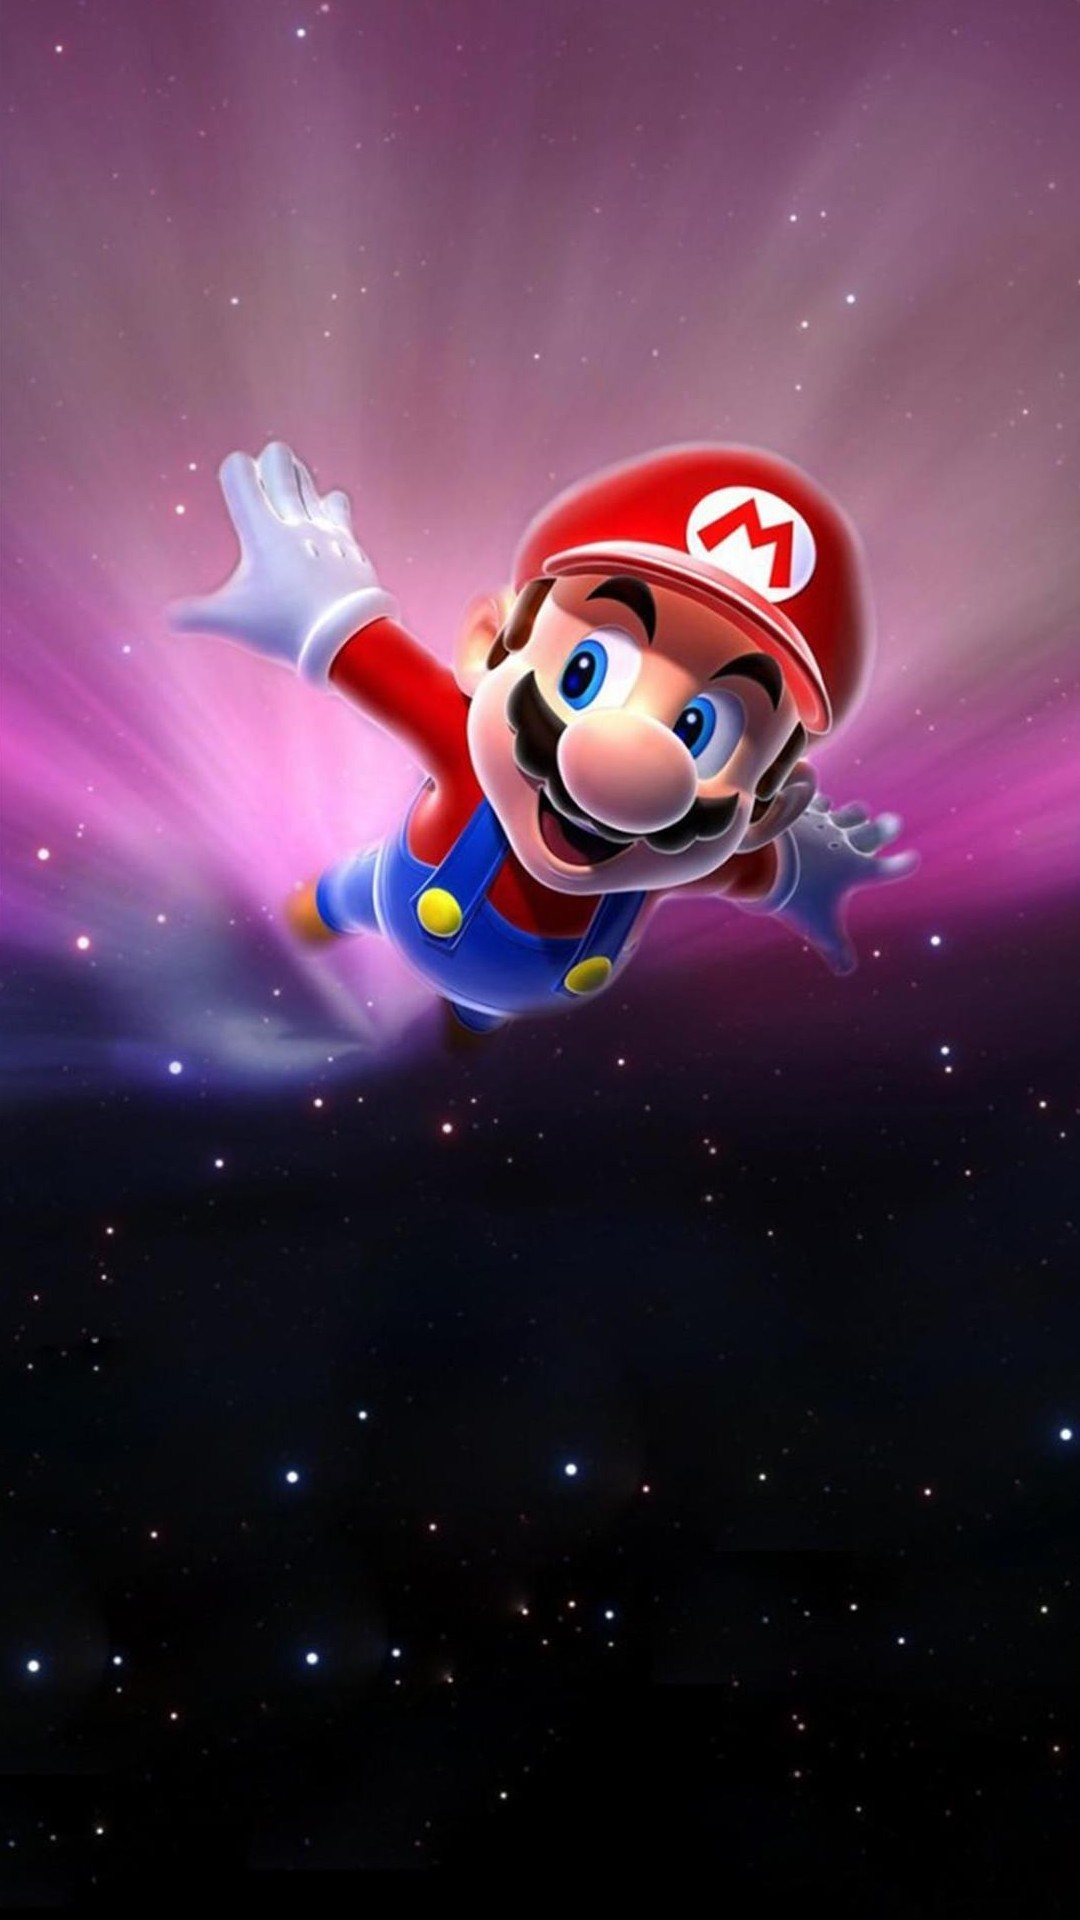 Super Mario Flying Poster Background For the kids :)